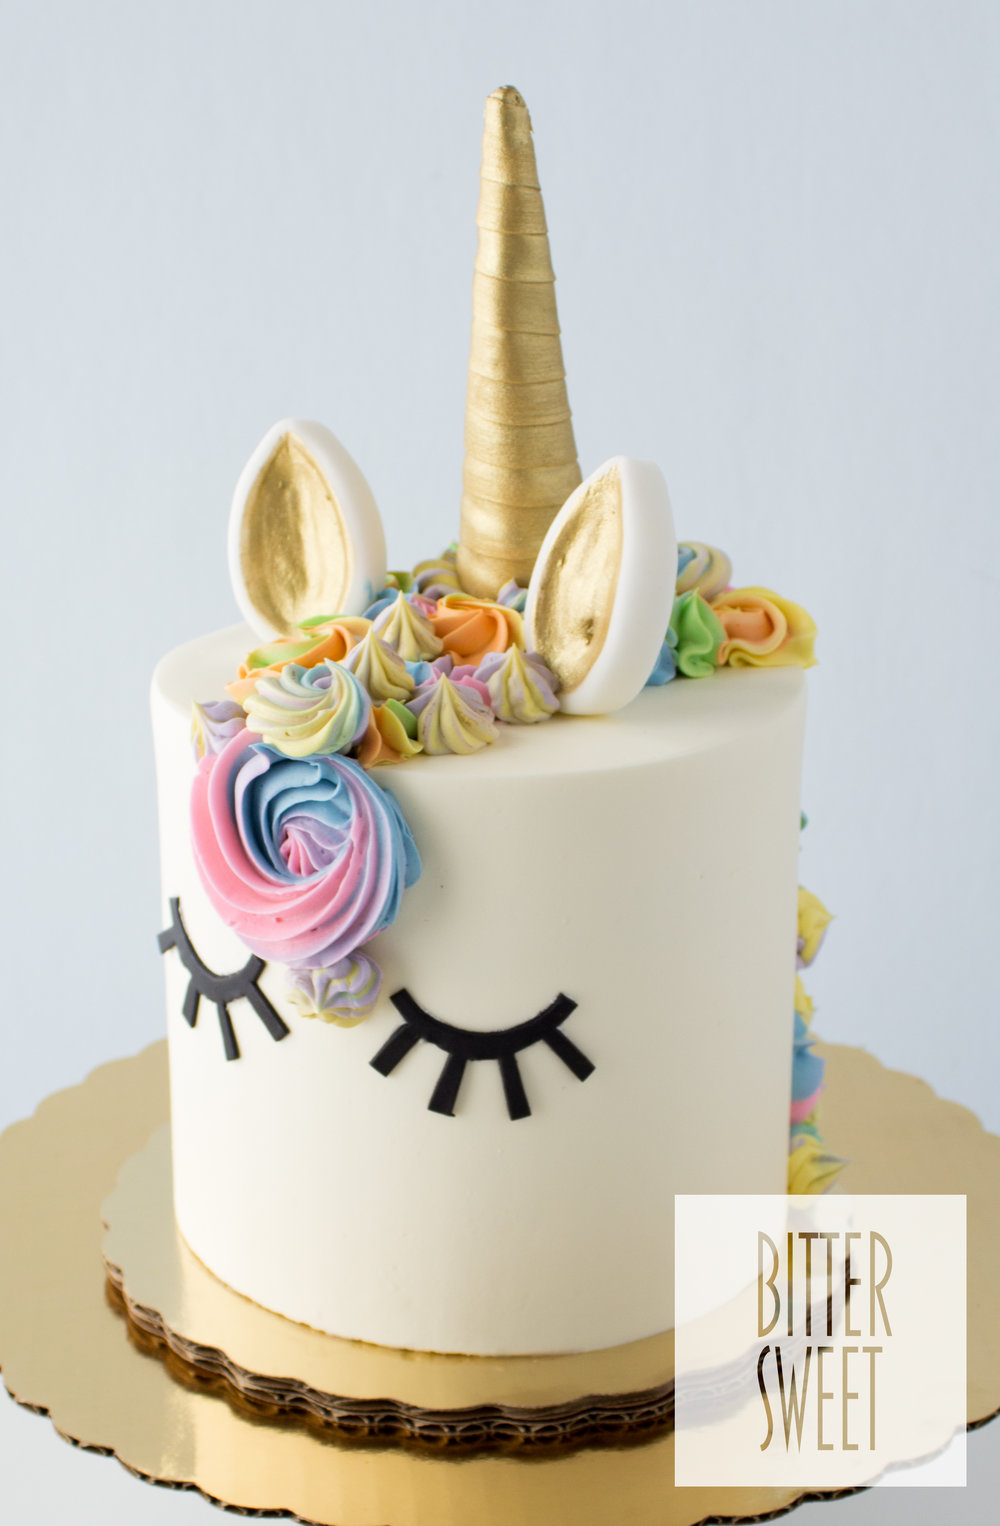 Bittersweet Birthday_Unicorn Cake.jpg